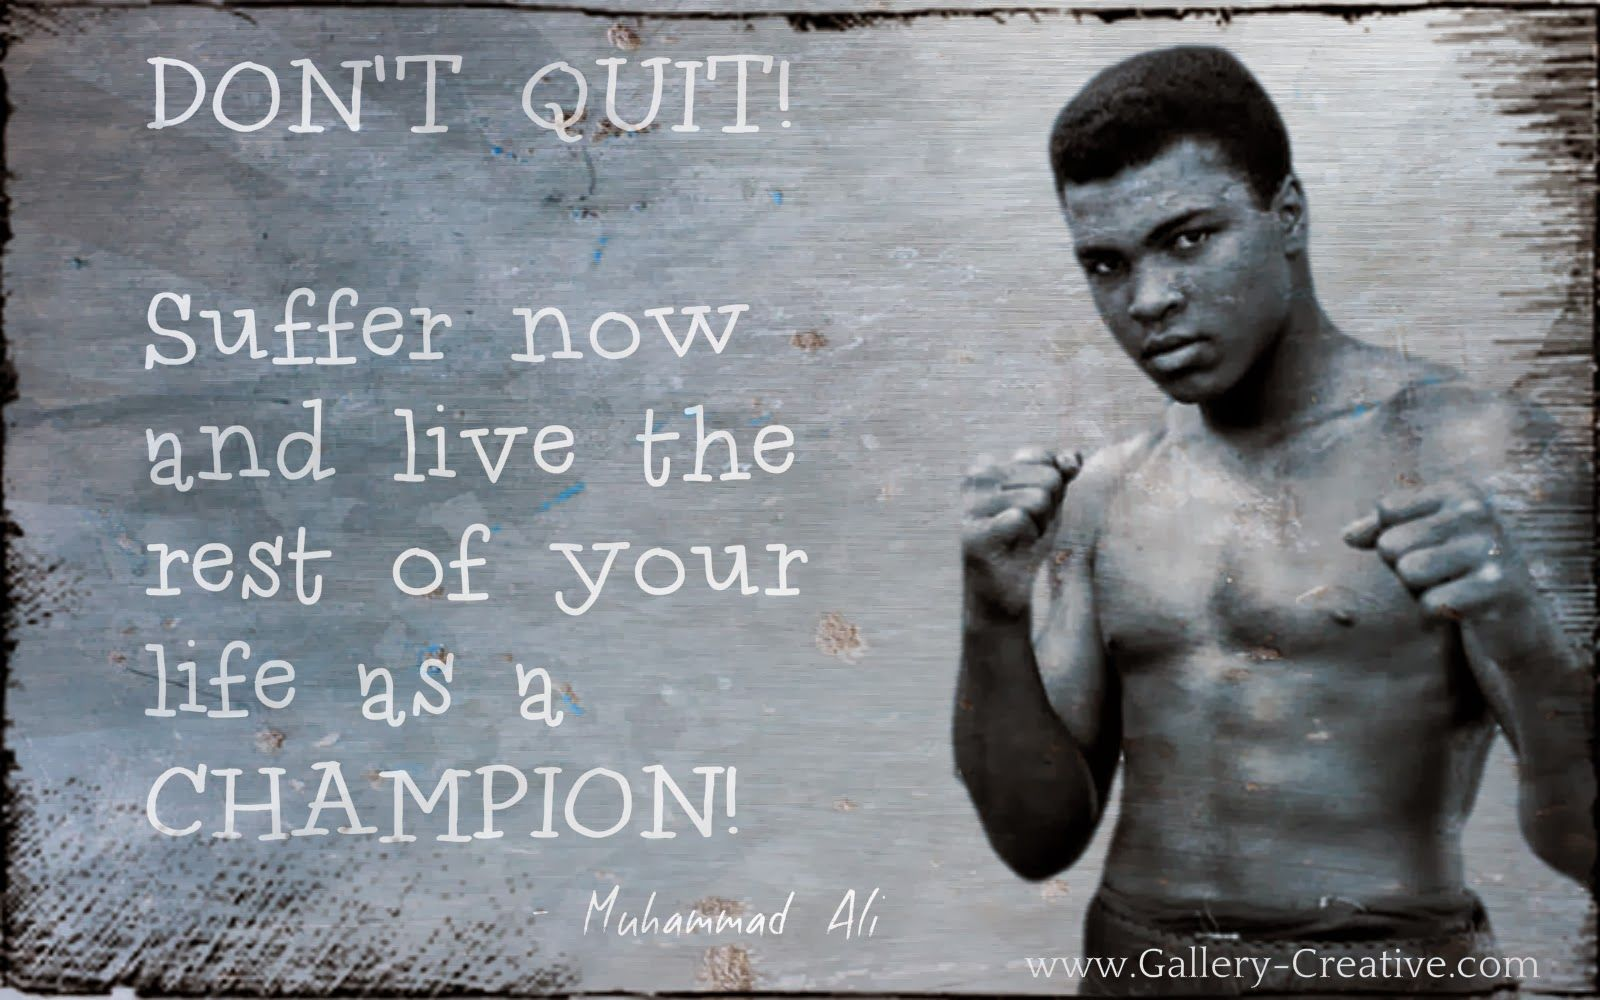 Pin by Lillieth on ALI & His WORDS Business quotes